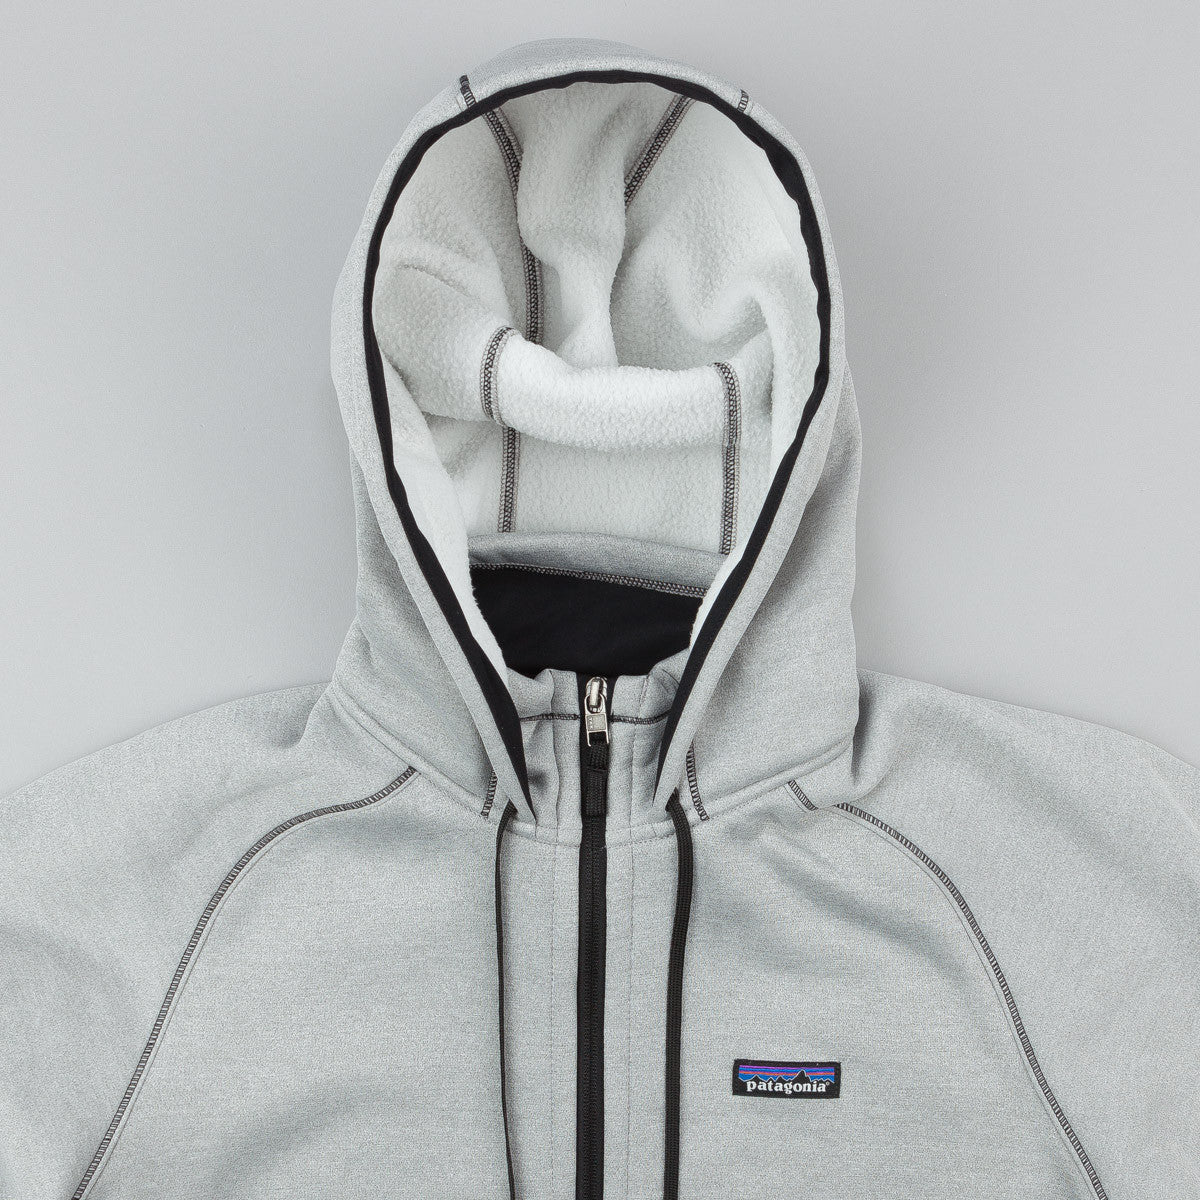 Patagonia Tech Fleece Hooded Sweatshirt - Birch White